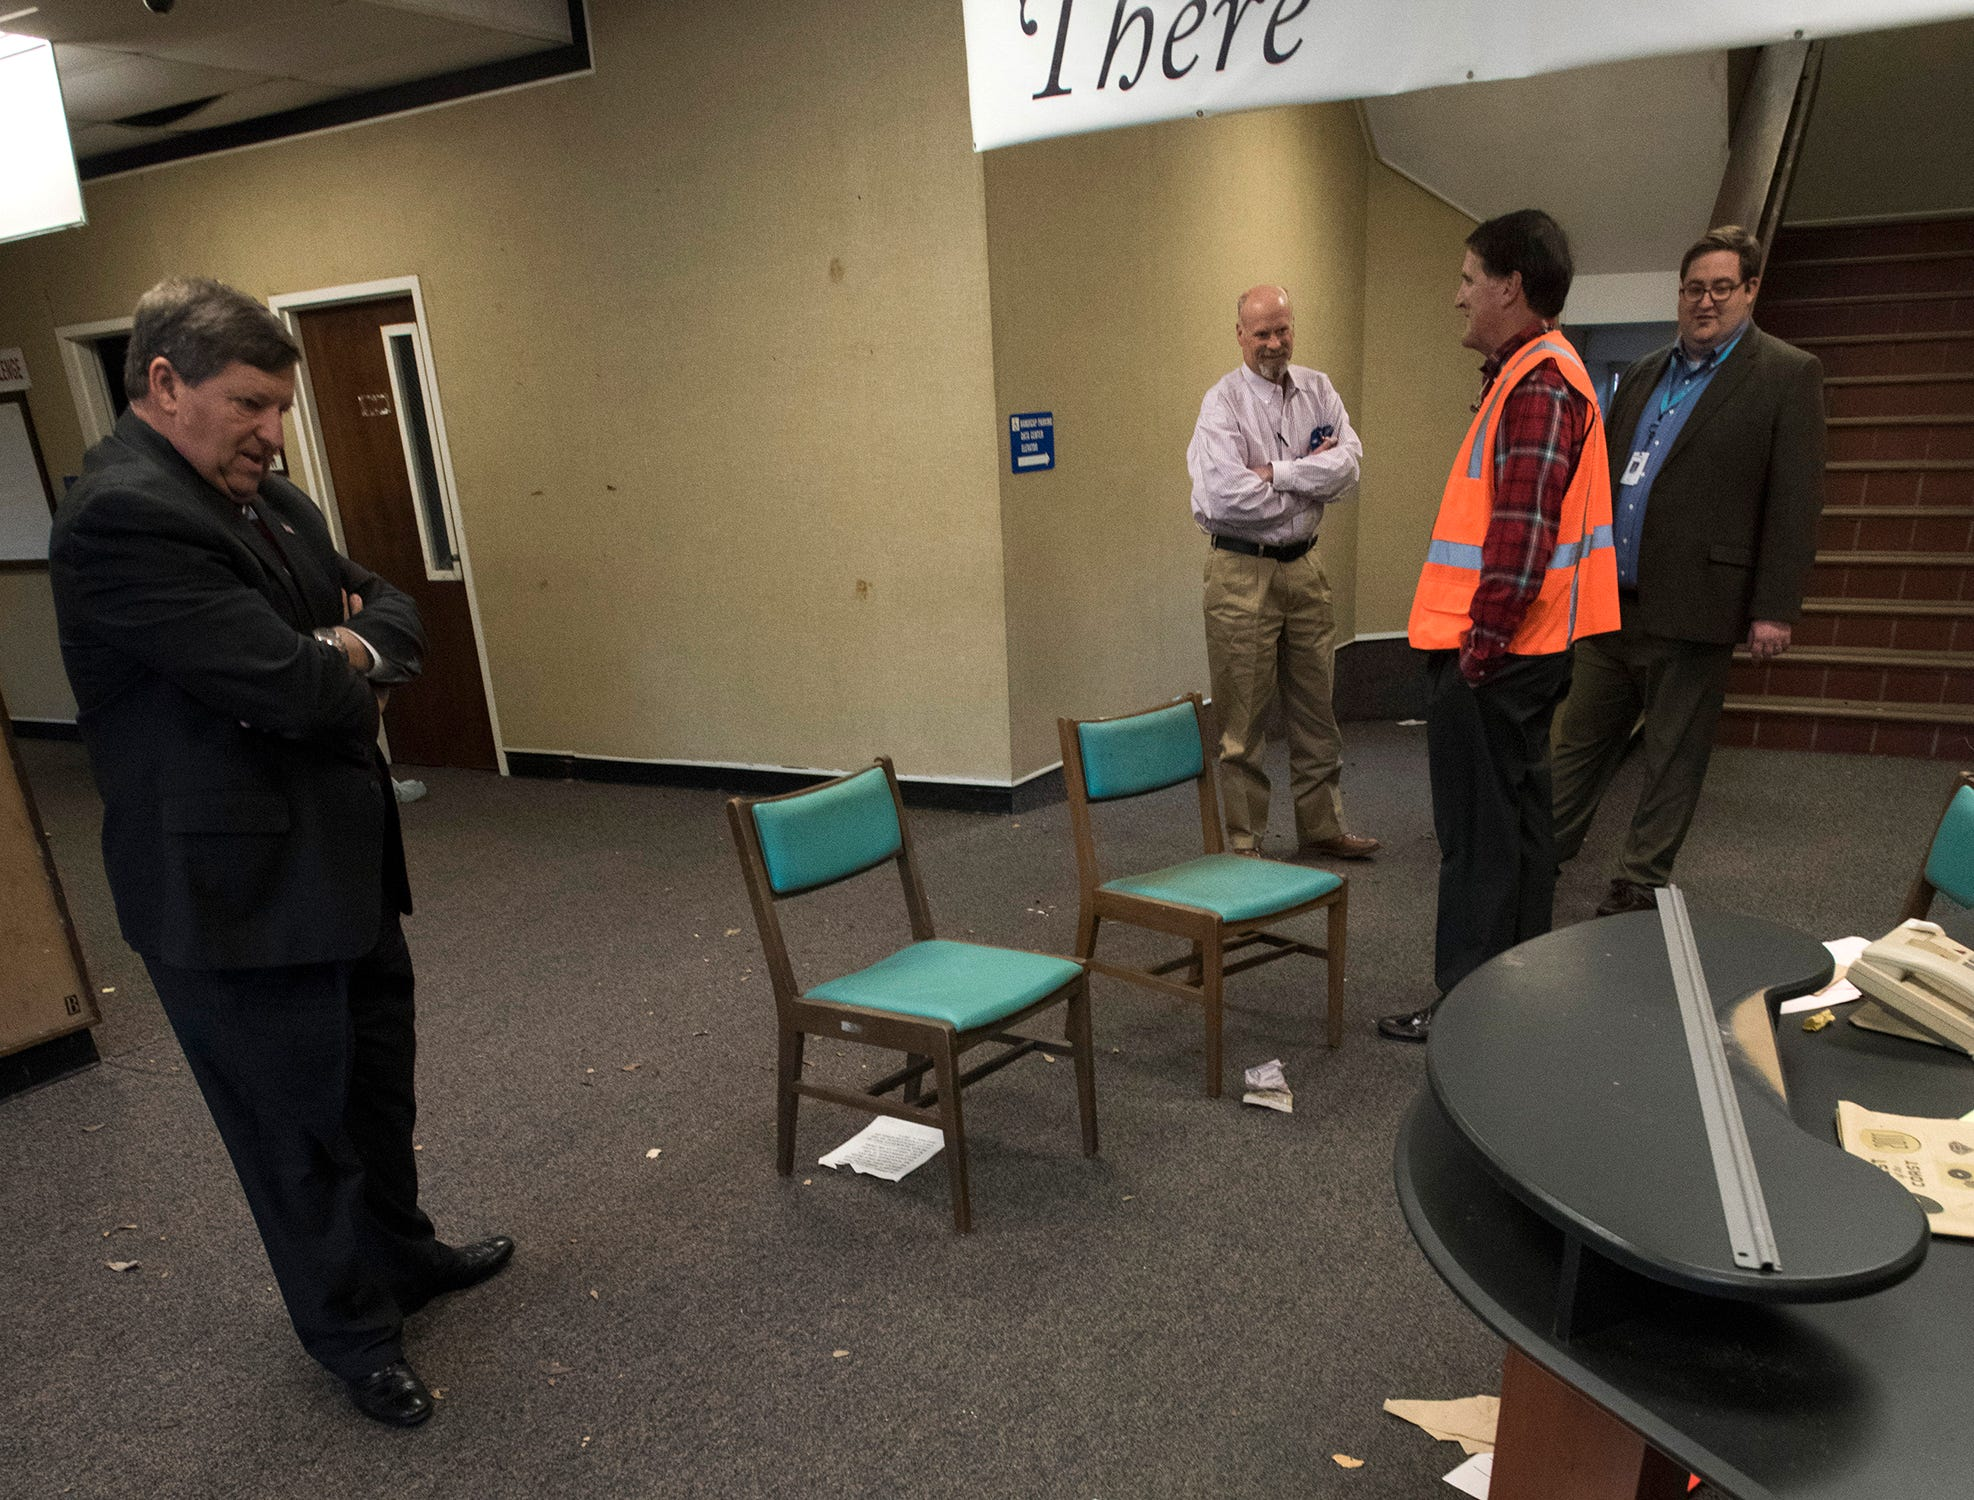 Escambia County School Superintendent,  Malcolm Thomas, Developer, Ed Carson, and Realtor Danny Zimmern, gives Pensacola News Journal Reporter Jim Little a tour of the old district headquarters building on Garden Street on Tuesday, Dec. 4, 2018. Developers want to build a 280-unit apartment complex on the school district site.